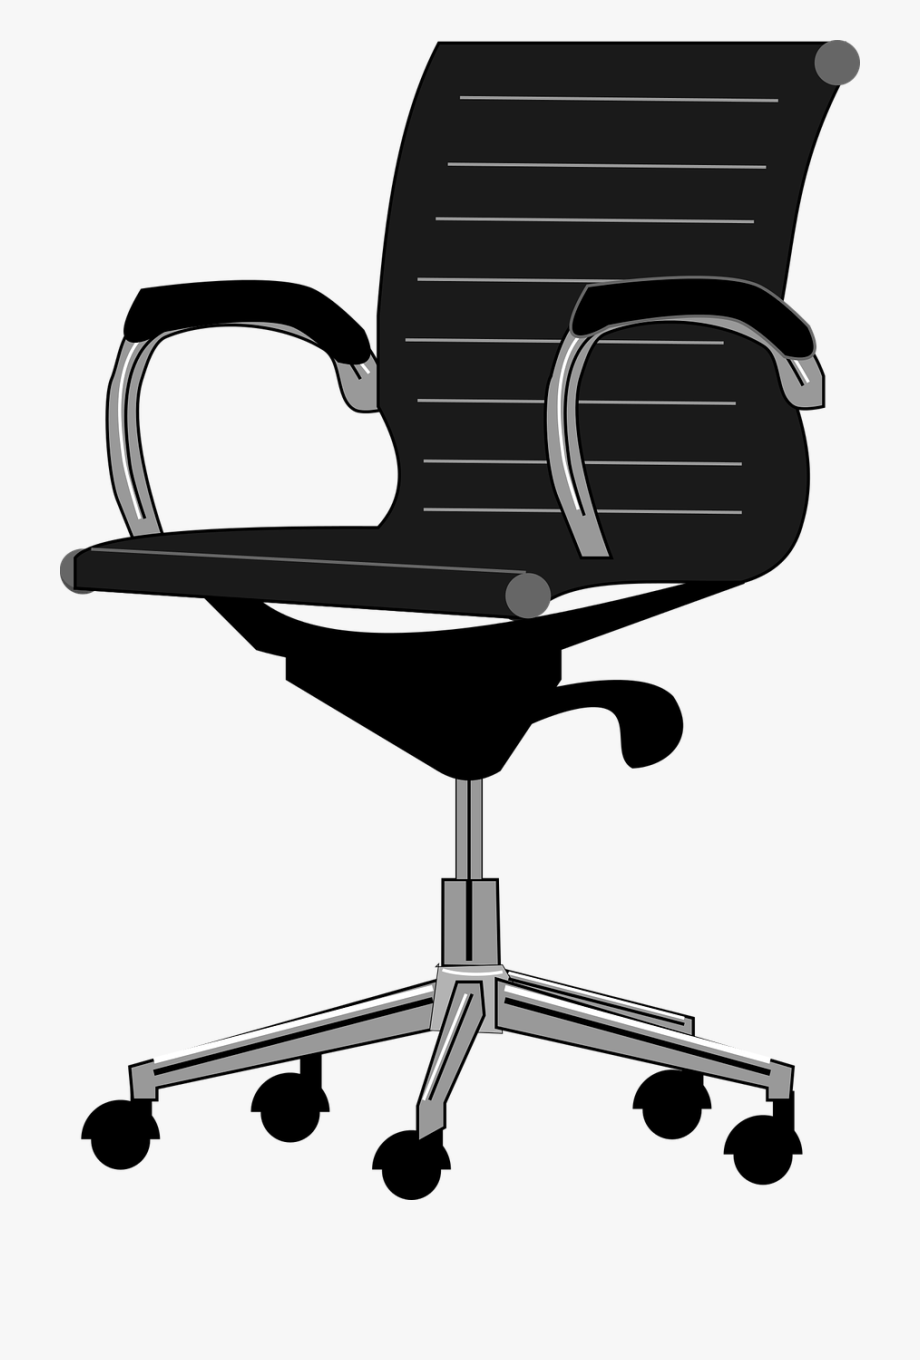 Office chair clipart image transparent stock Office Chair - Office Chair Clipart #99071 - Free Cliparts on ... transparent stock